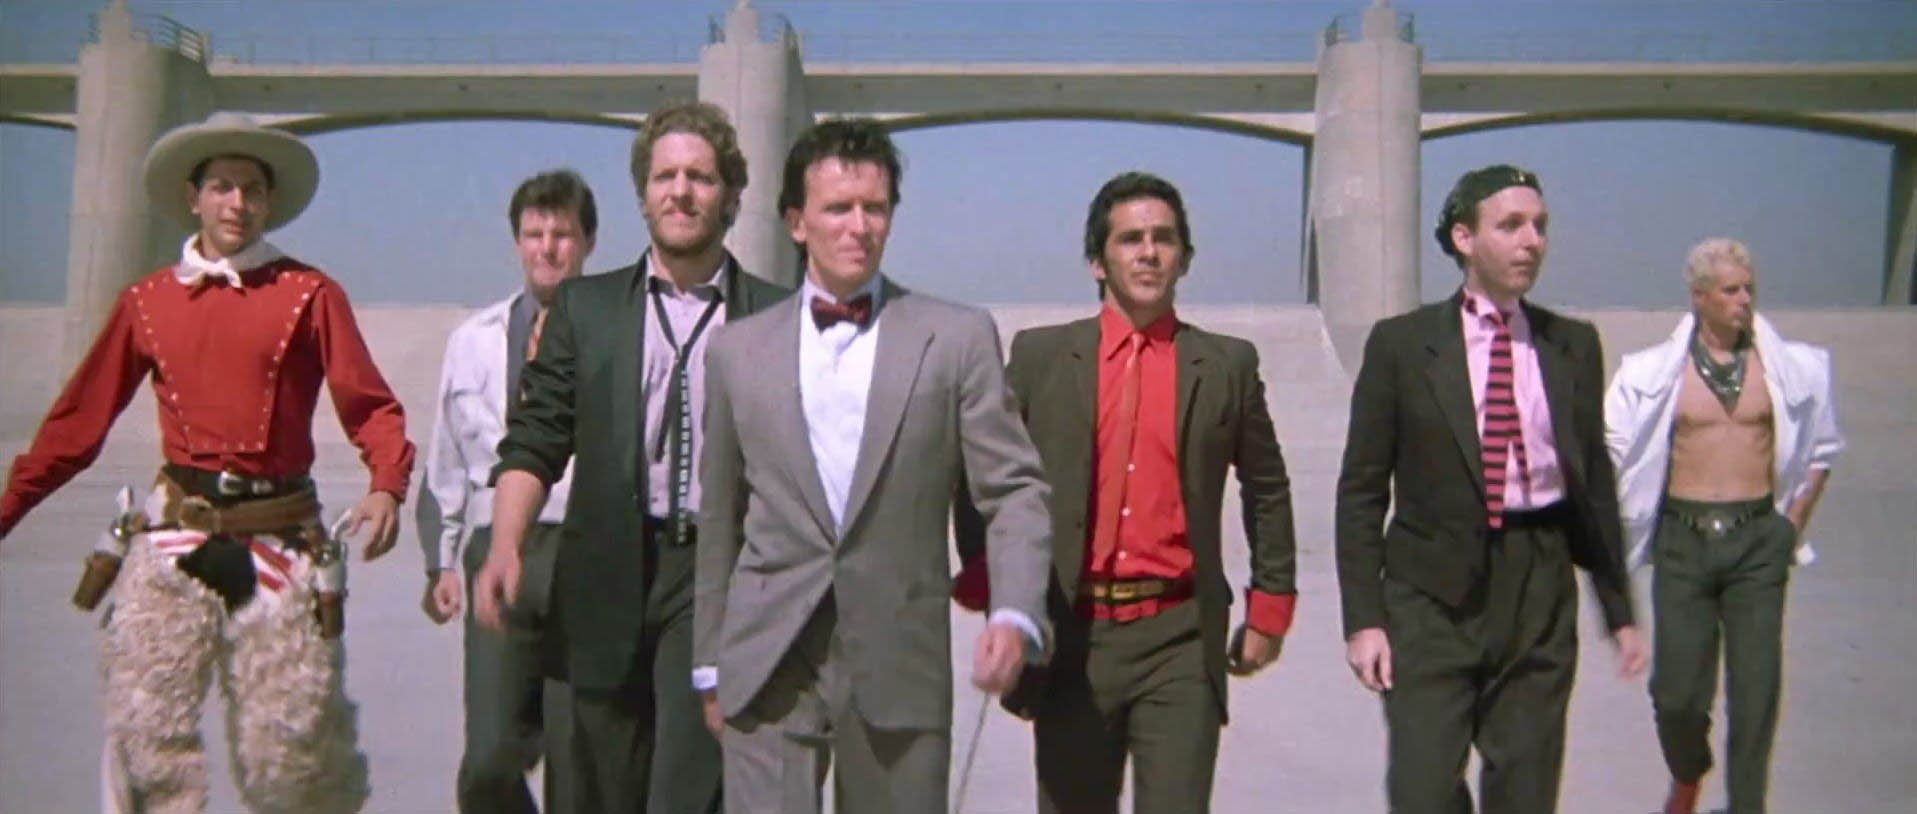 1984 Movie Project - Buckaroo Banzai - 01